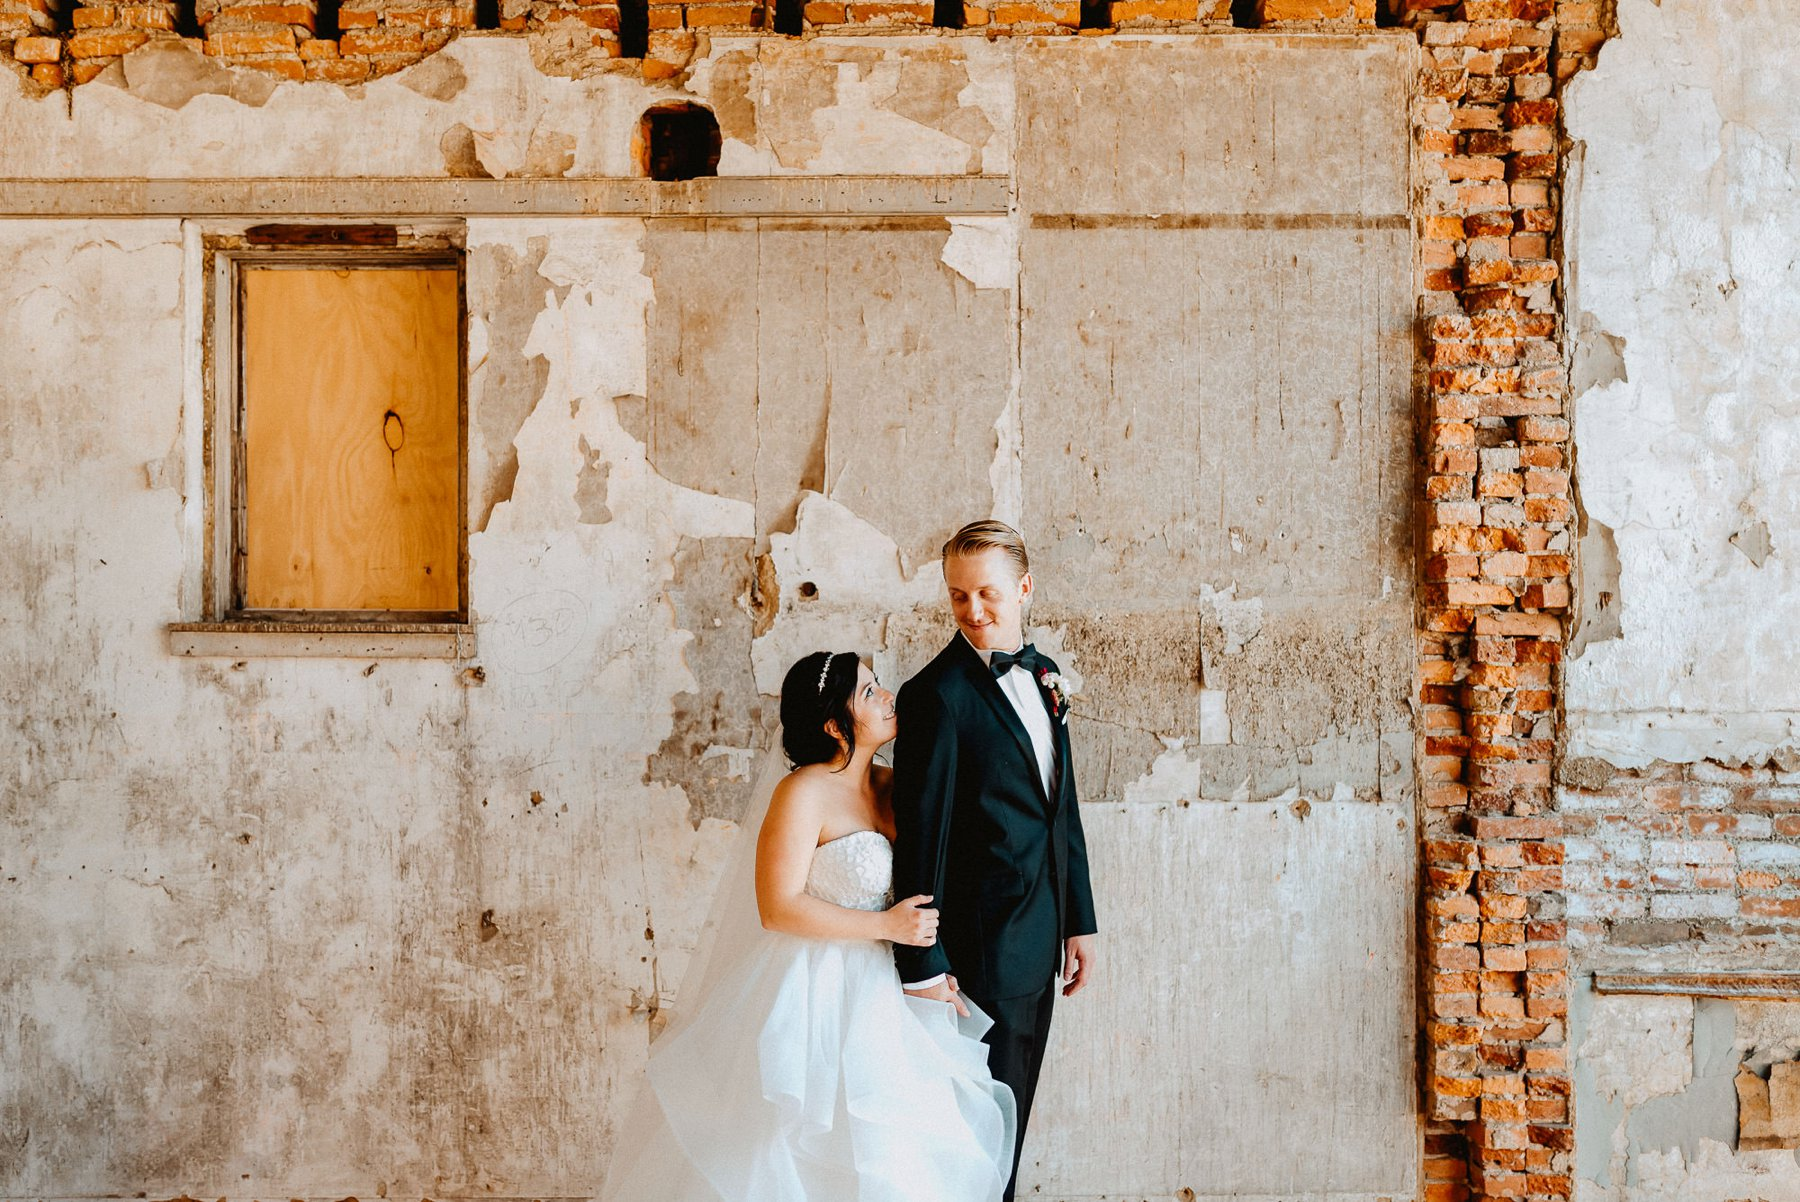 excelsior_lancaster_wedding_photographeer-029.jpg